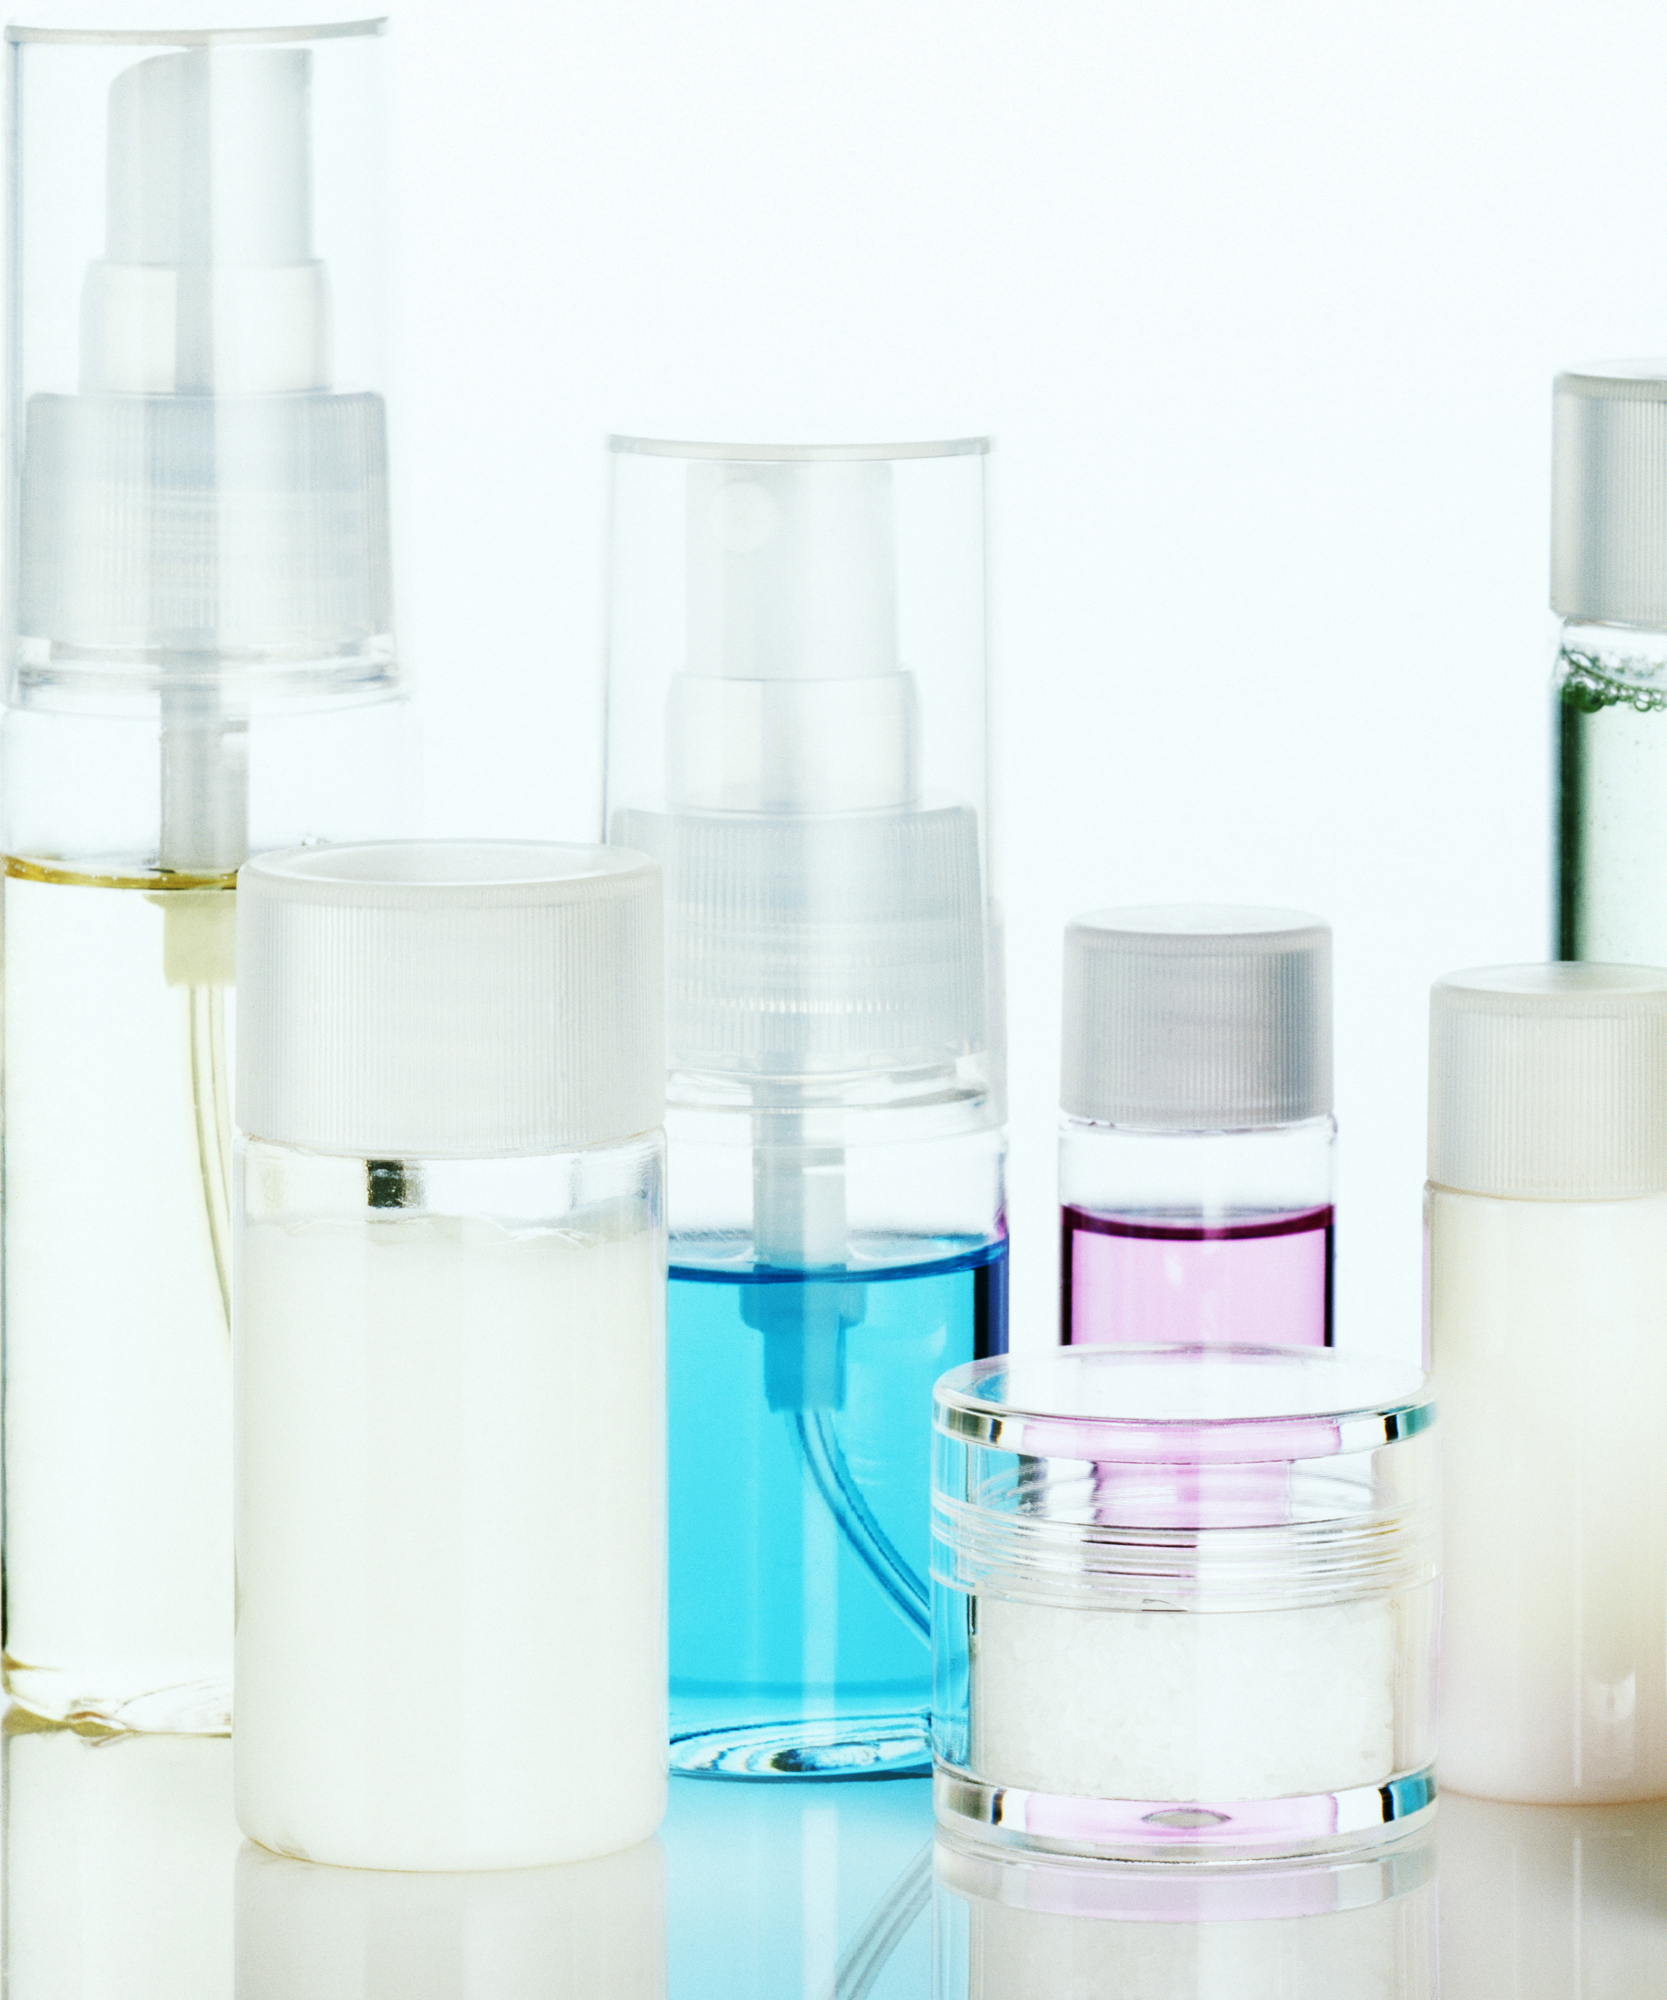 Clean Up Your Act! How to Recycle Shampoo, Lotion, Body Wash, and Makeup Empties